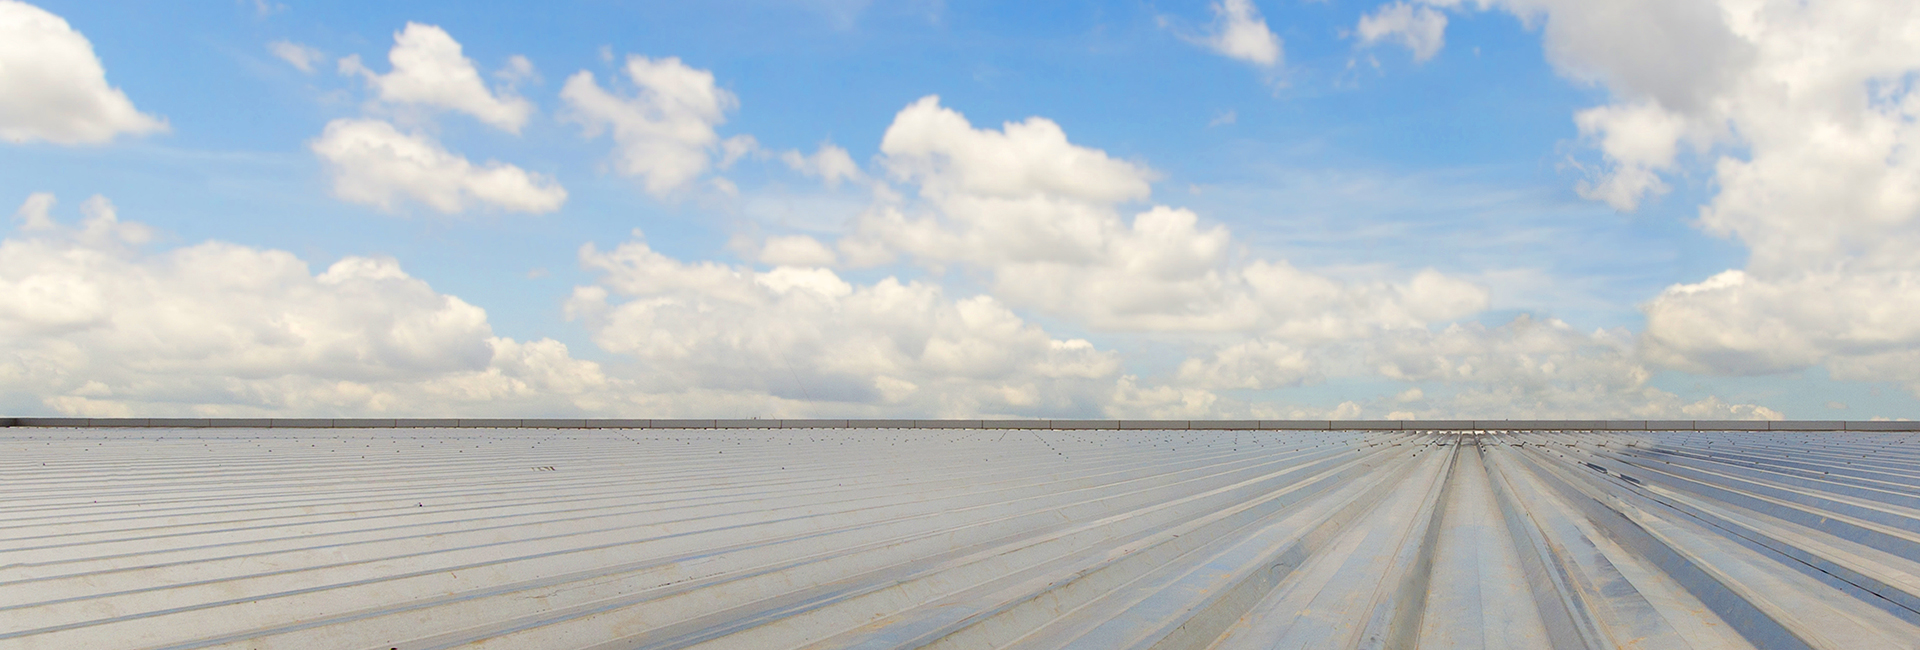 Over 10 Million Square Feet of Commercial Roofing Installed!